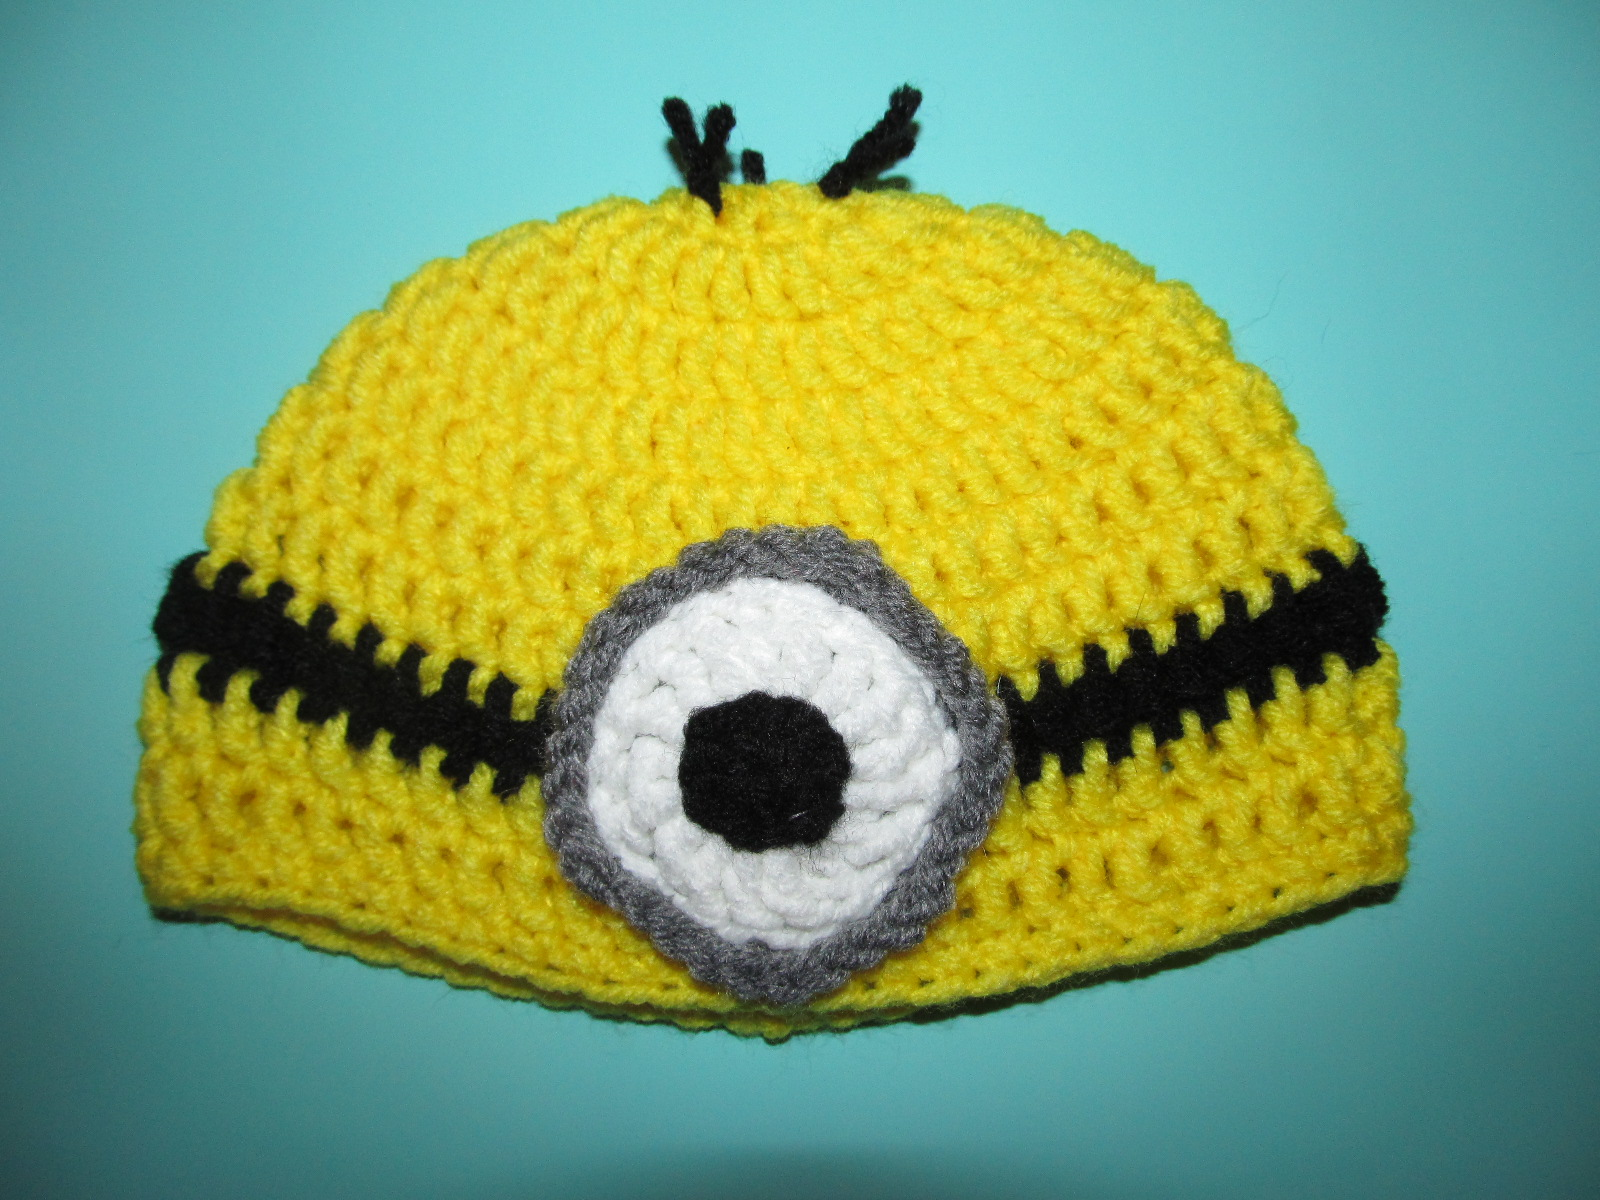 Crochet Hat Pattern Minion : Simply Crochet and Other Crafts: Despicable Me Minions ...